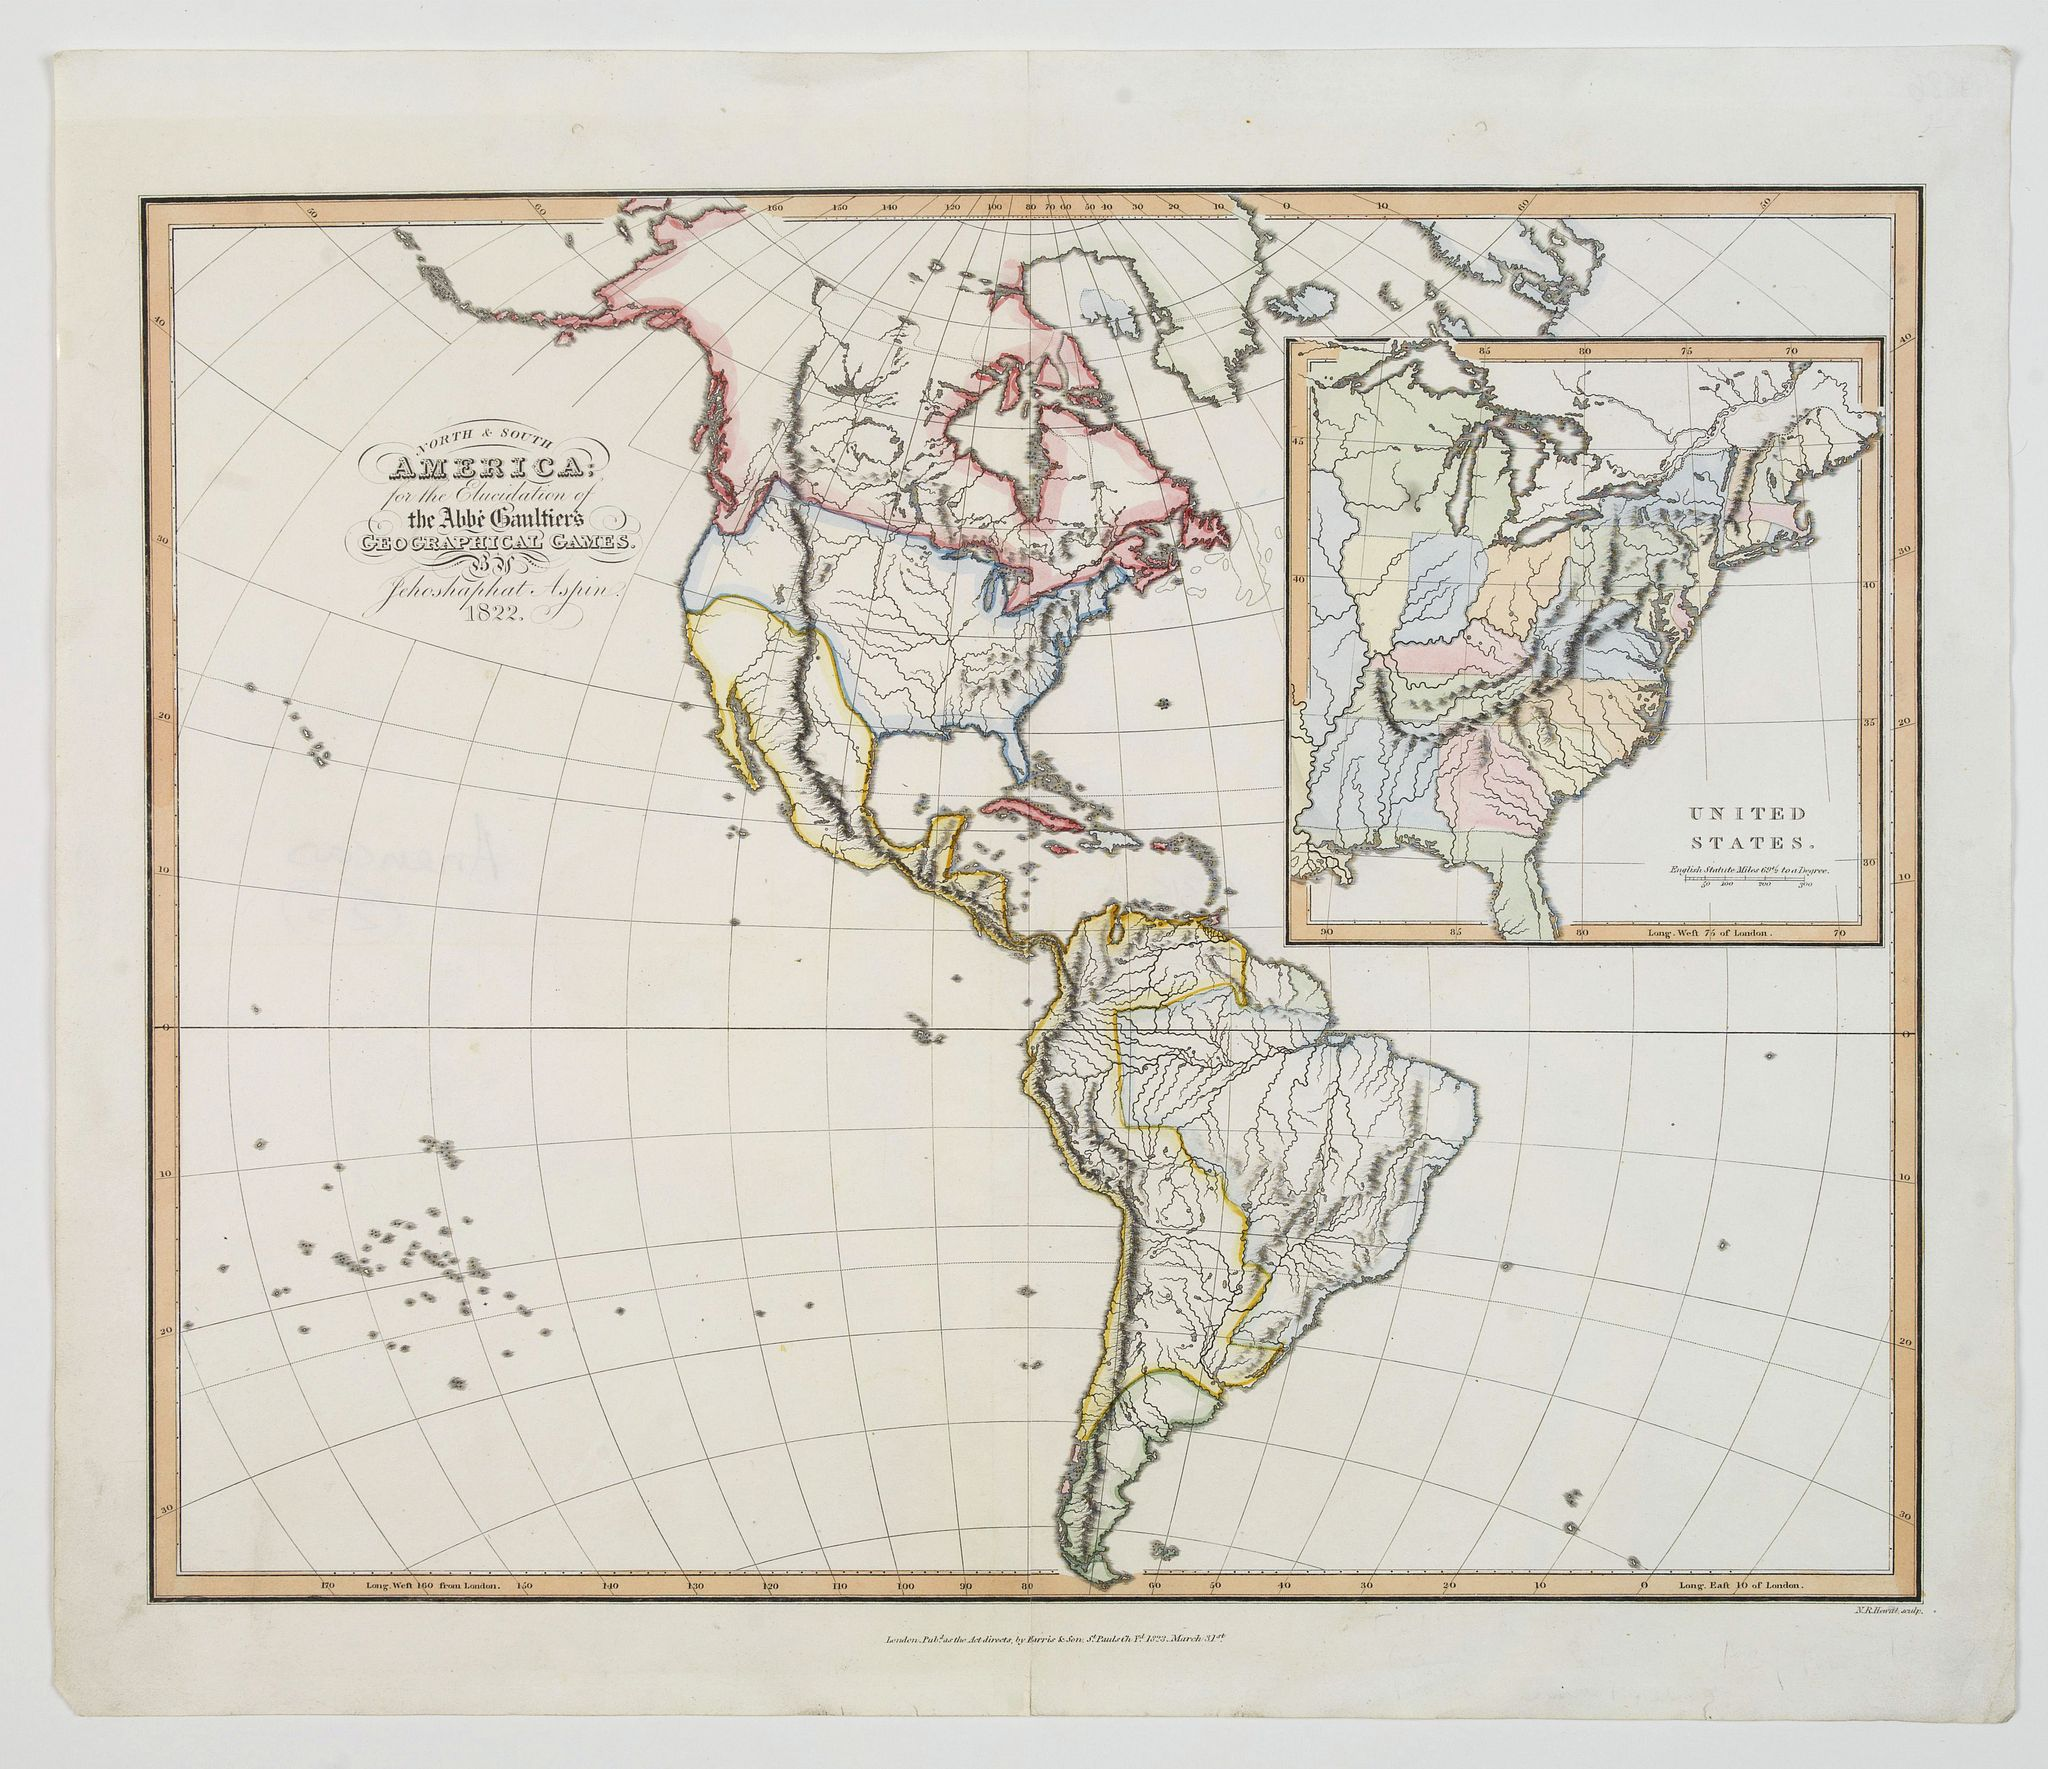 ASPIN, J. - North & South America, for the Elucidation of the Abbe Gaultier's Geographical Games.